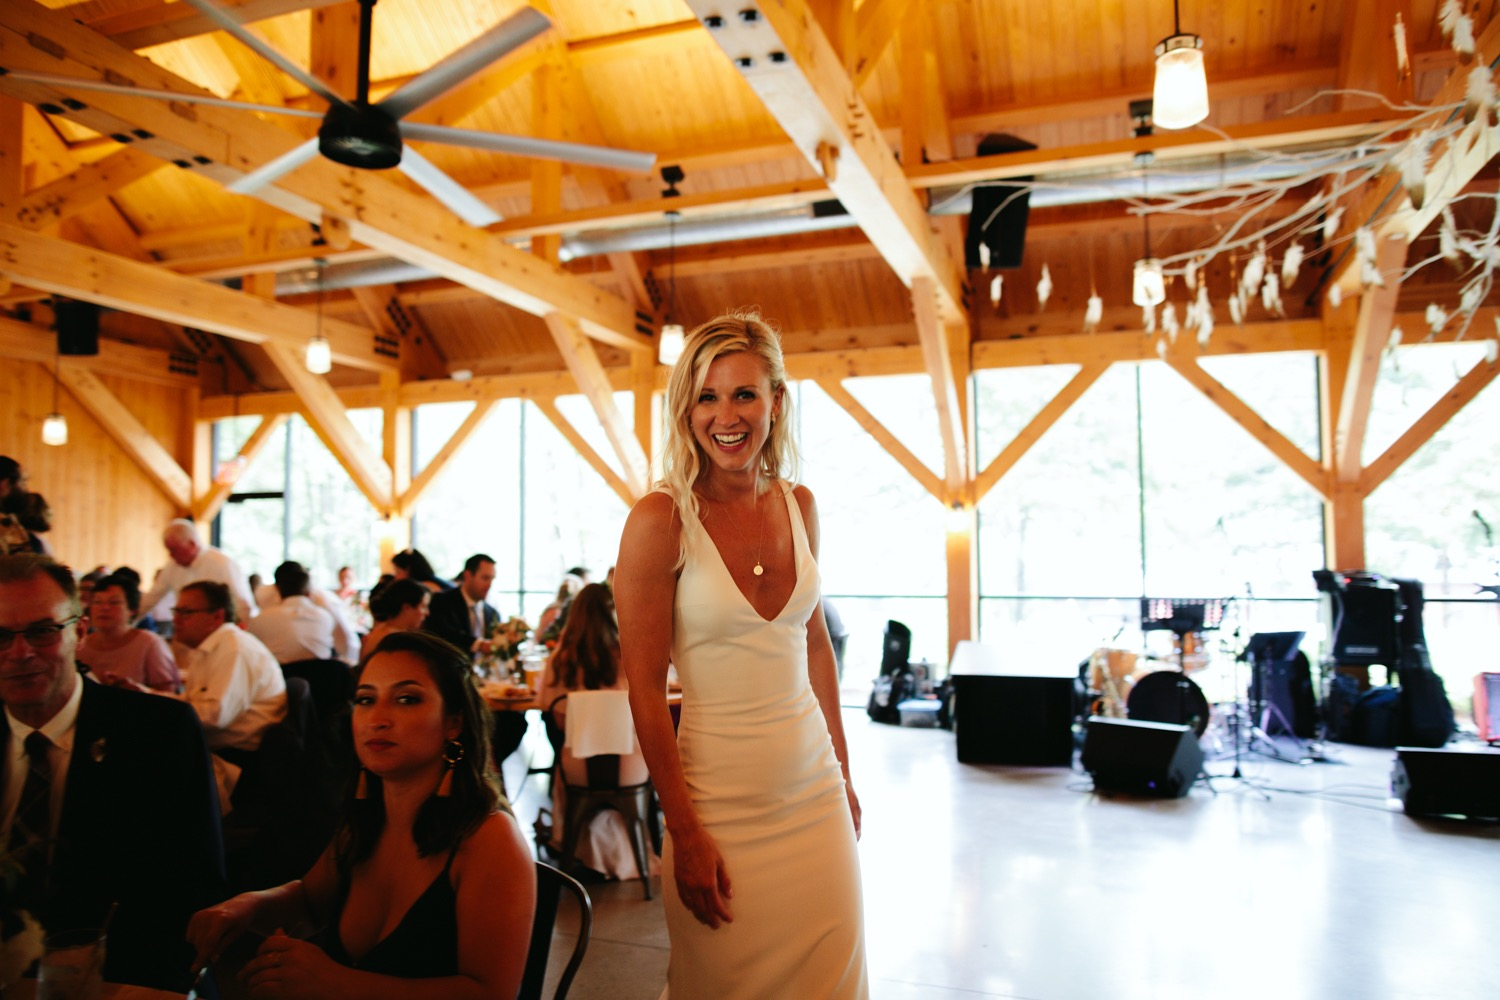 vermont-mad-river-barn-wedding